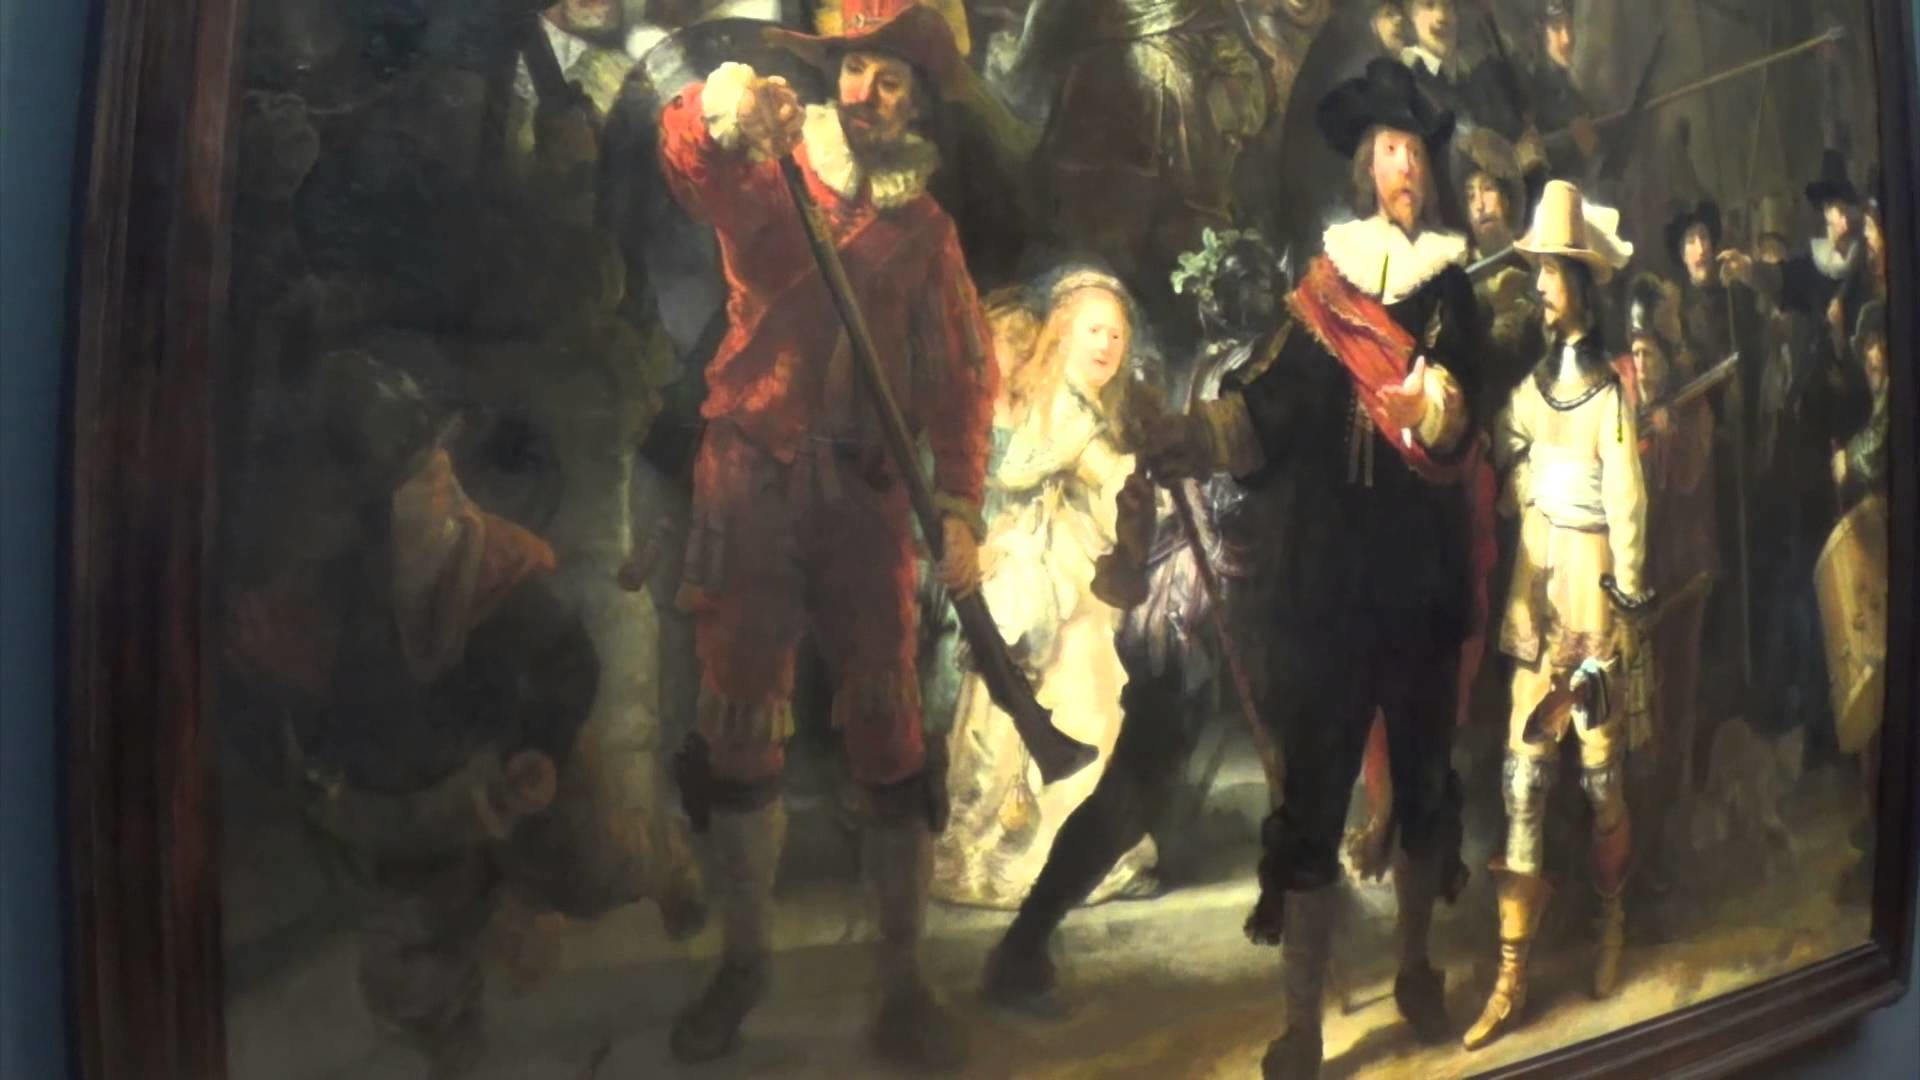 1920x1080 The Night Watch - a Rembrandt at the Rijksmuseum